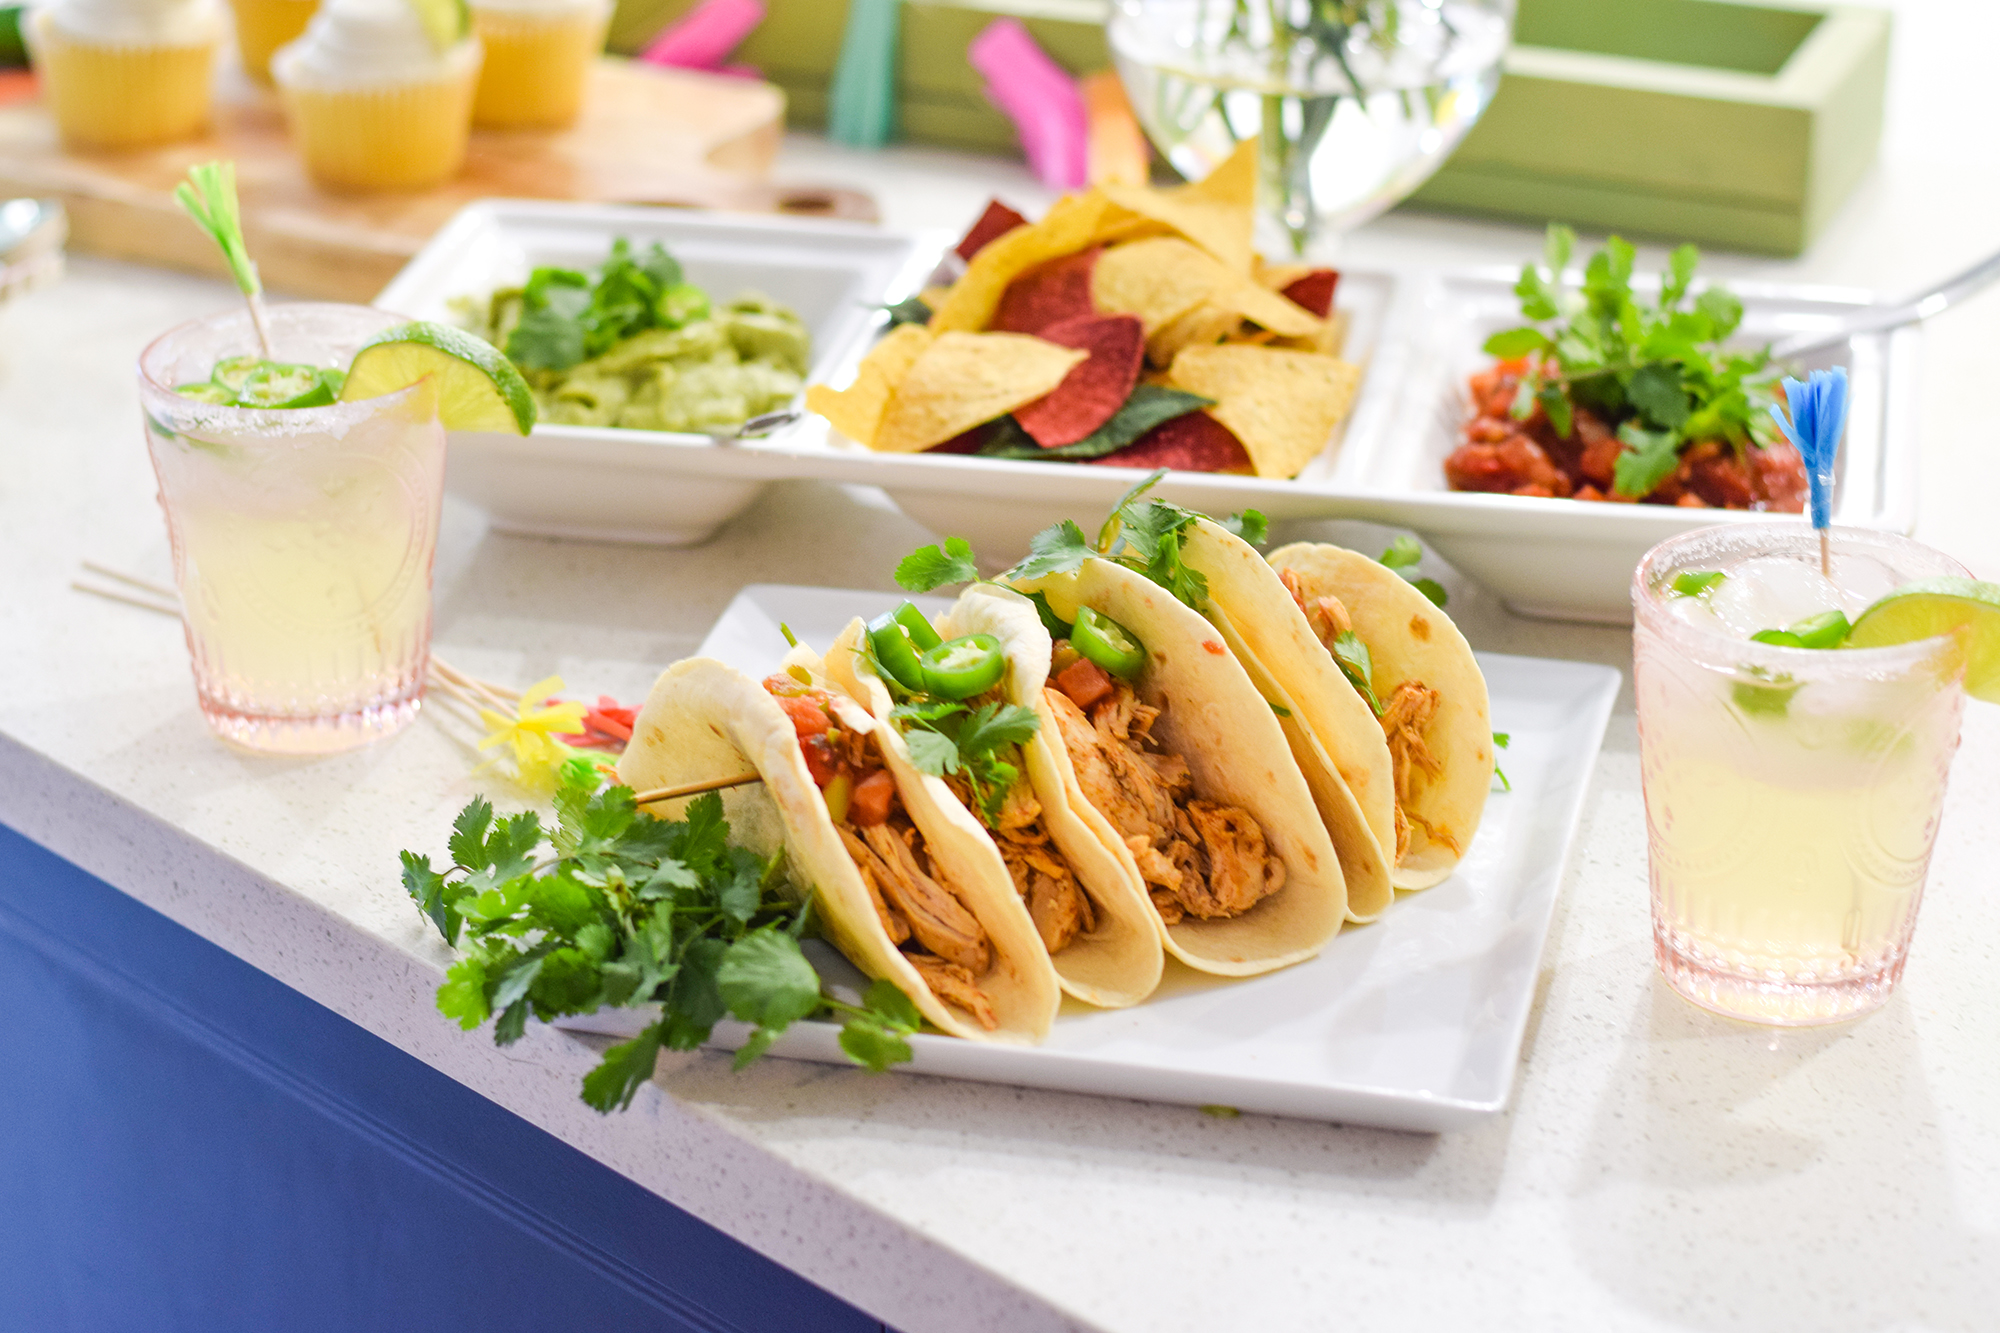 Fiesta with Tacos